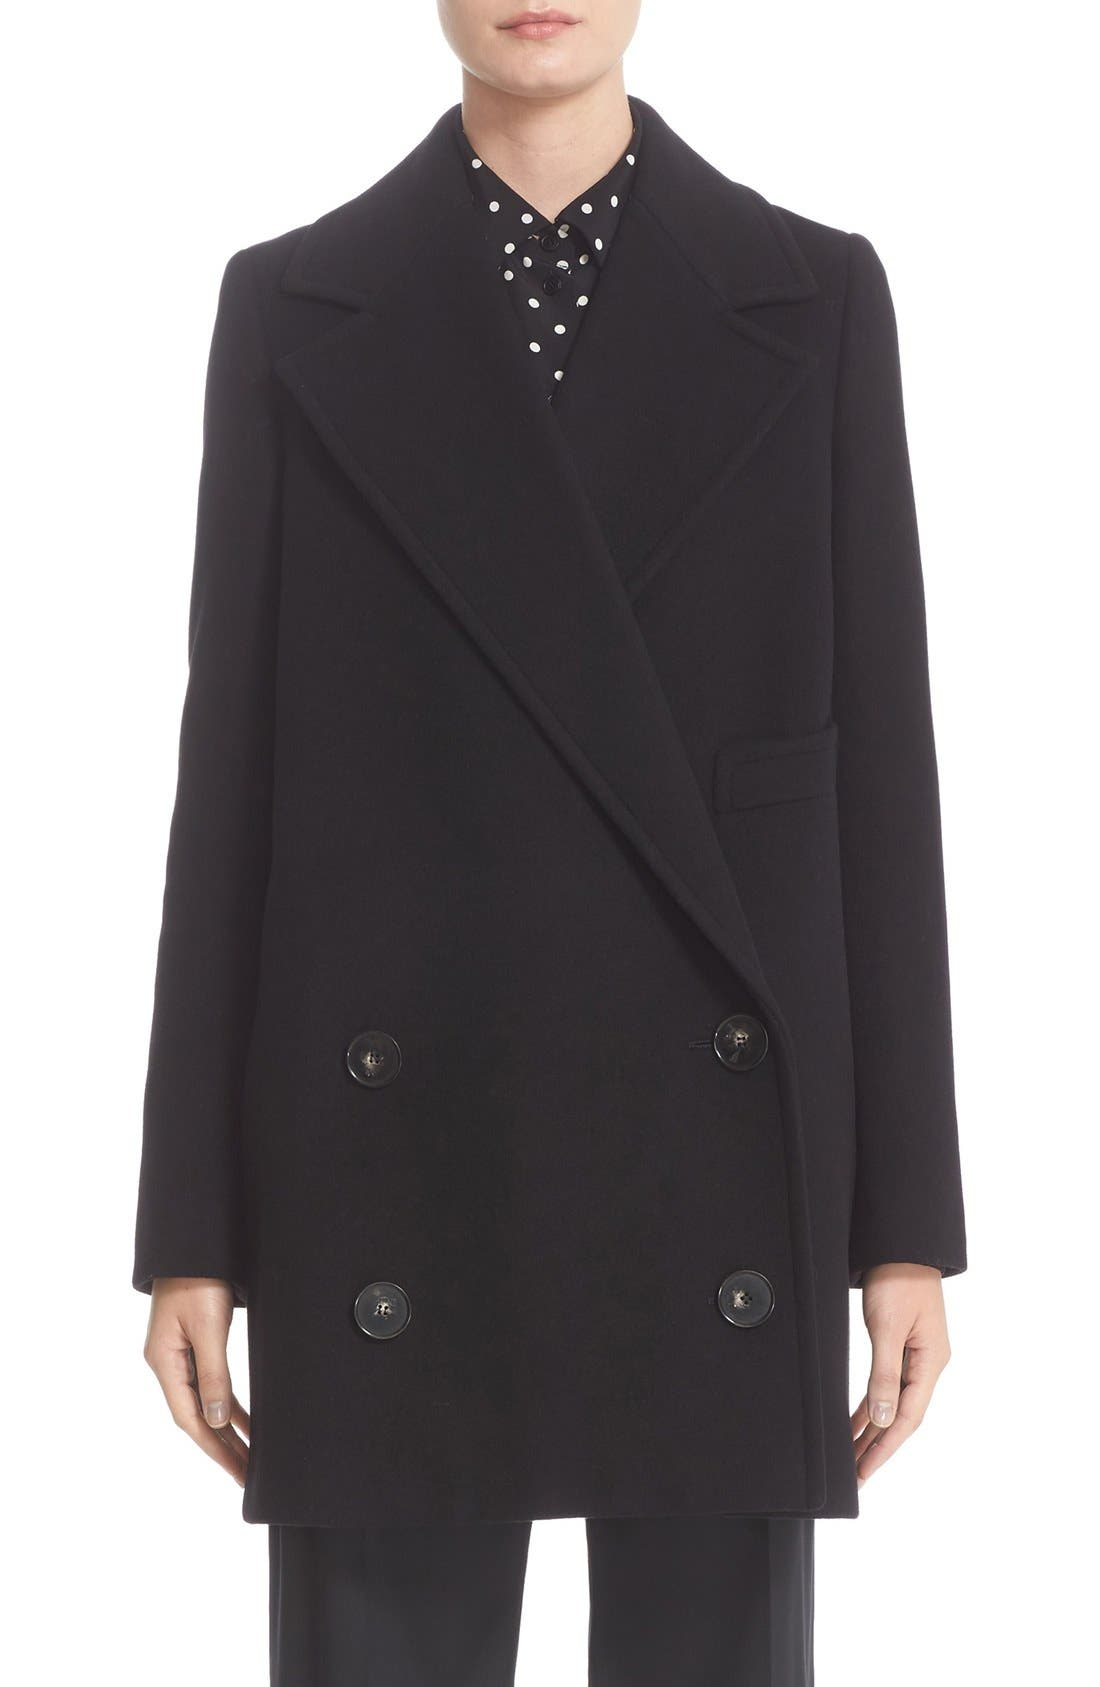 'Edith' Double Breasted Wool Blend Coat,                             Main thumbnail 1, color,                             001